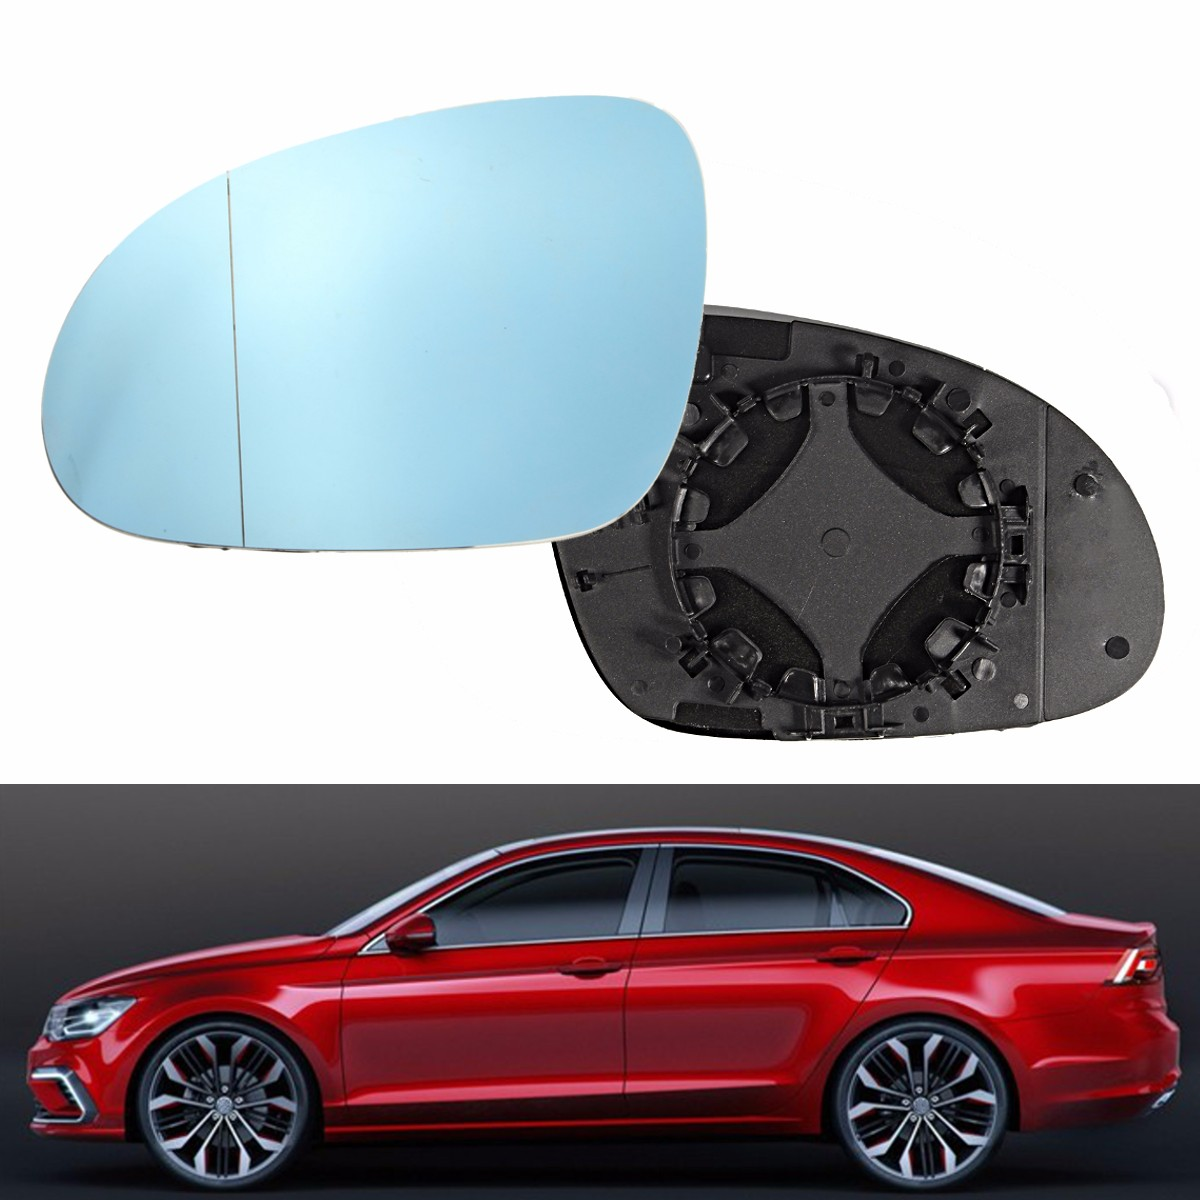 VOLVO S60 V70 S80 1999-2002 WING MIRROR GLASS BLUE+PLATE ASPHERIC RIGHT OR LEFT